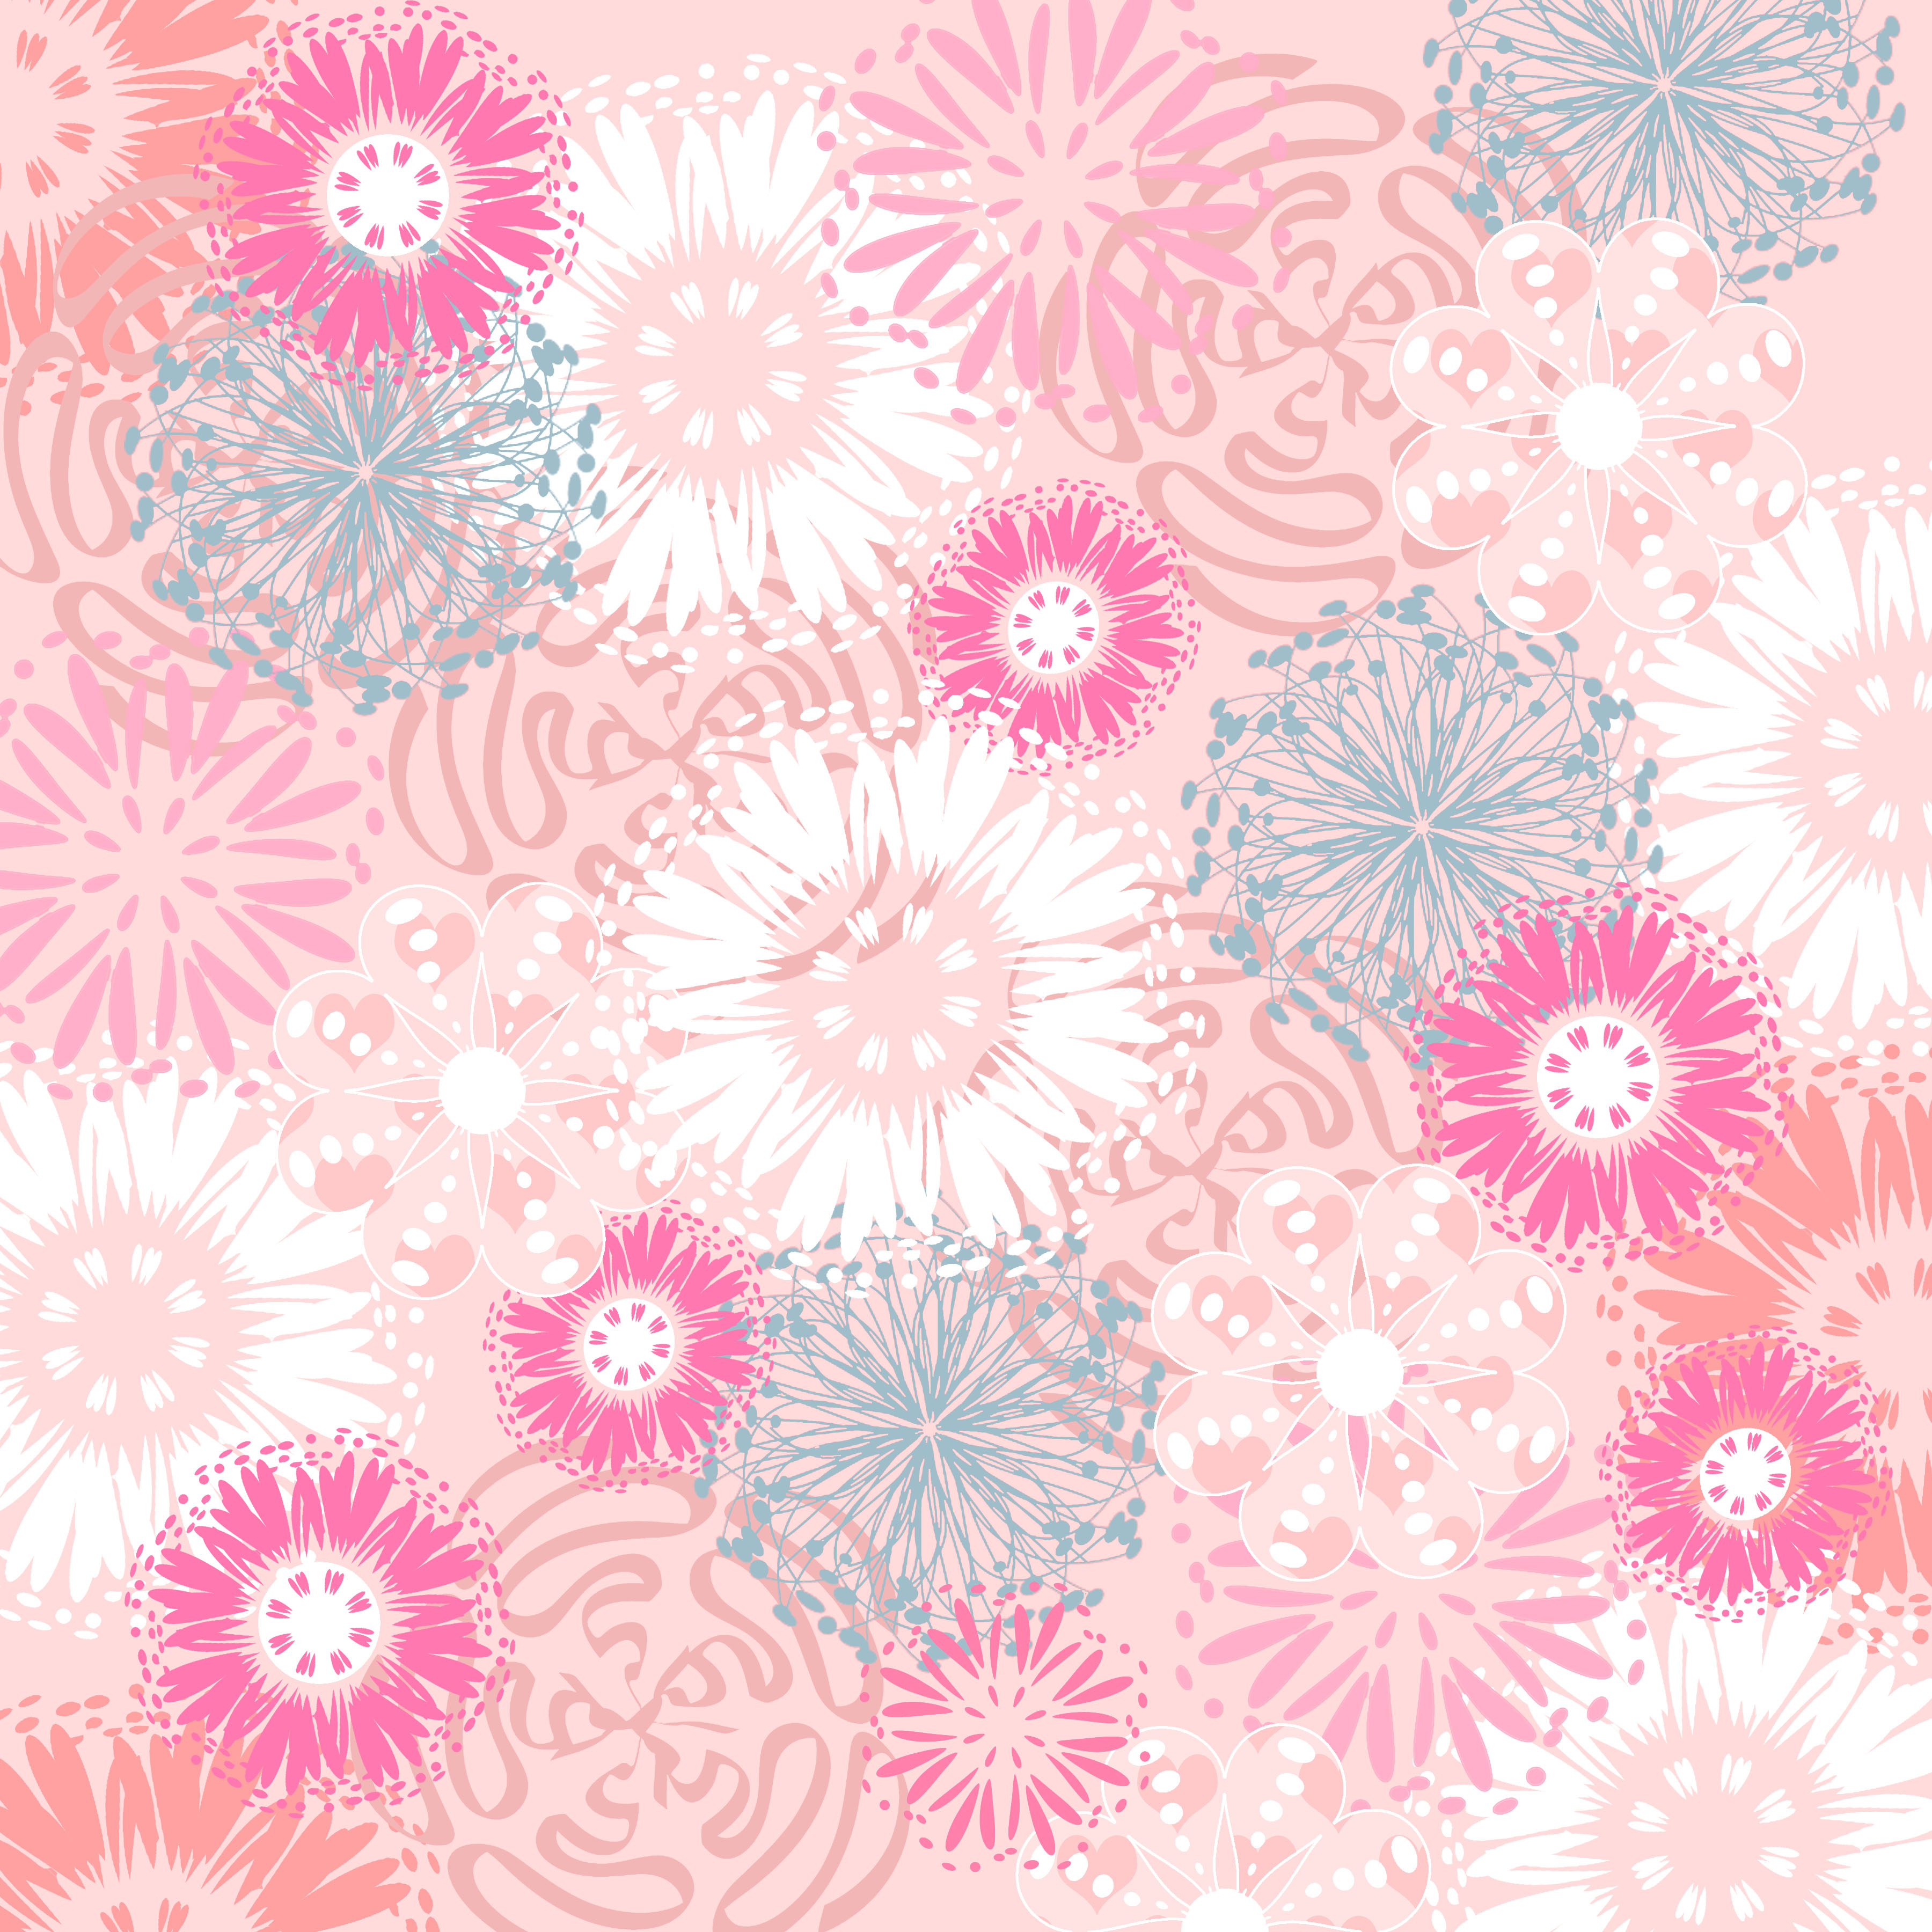 Download Backgrounds Paper Printables Sheet Backgrounds Wallpapers - Free Printable Backgrounds For Paper